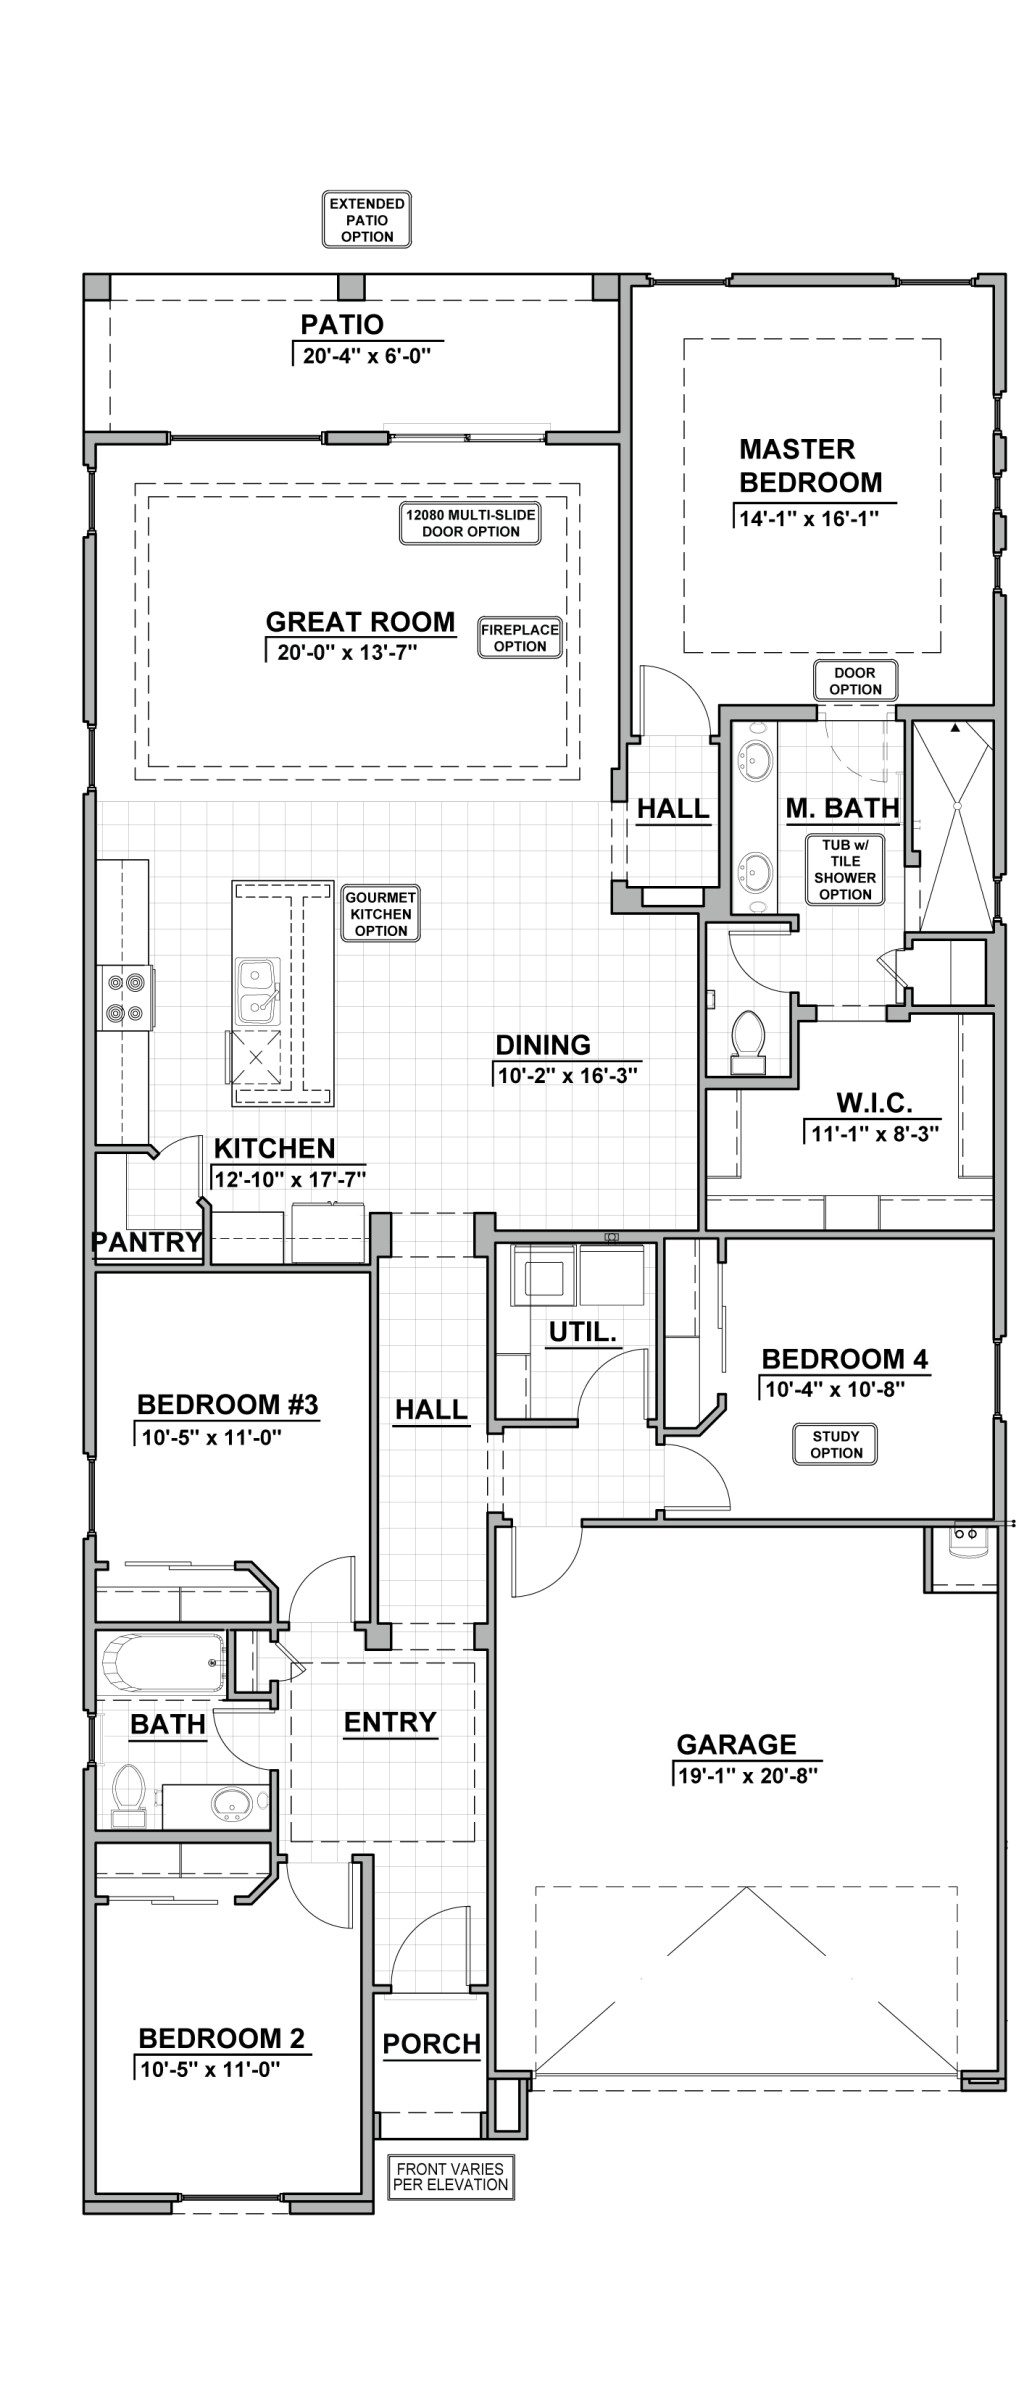 Valle Prado 1907 Floor Plan